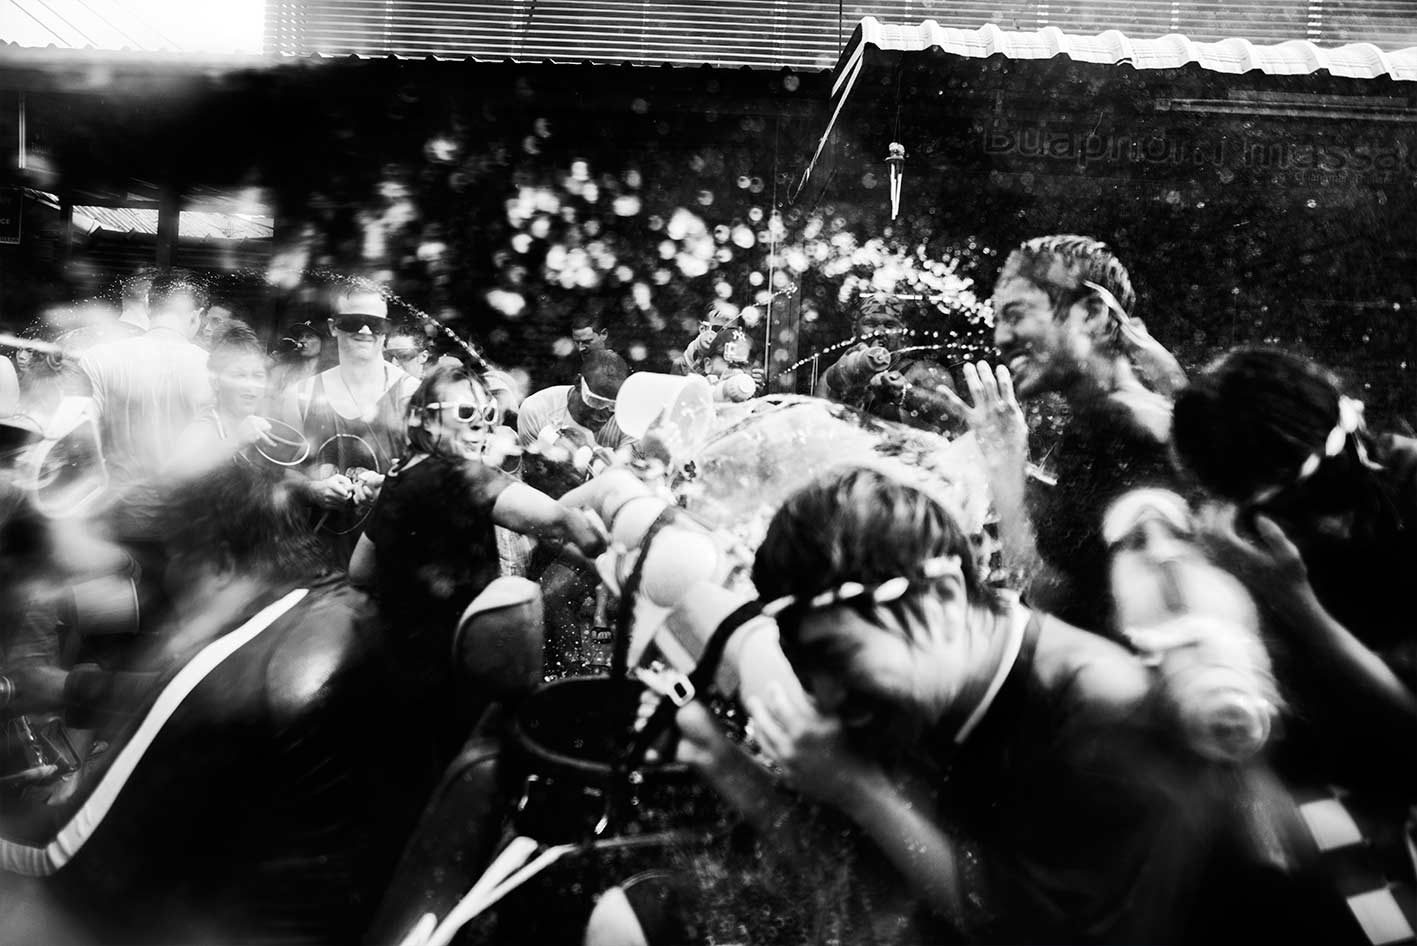 The great annual water festival, goes by many names in Southeast Asia, in Thailand it's known as Songkran. It ushers in the start of rainy season in April, a time when after five excruciatingly dry months the sky finally opens and water pours on to the bone dry land. It's celebrated nationwide with mass water fights and traditional Buddhist rituals. The Northern Thai city of Chiang Mai is widely known for where the water really gets flowing.  I documented Songkran from the perspective of a participant, to allow my audience to immerse themselves in the carnival atmosphere as if taking part with their own water pistol in hand. The only difference was that instead of shooting a water pistol I was shooting a camera wrapped in plastic.